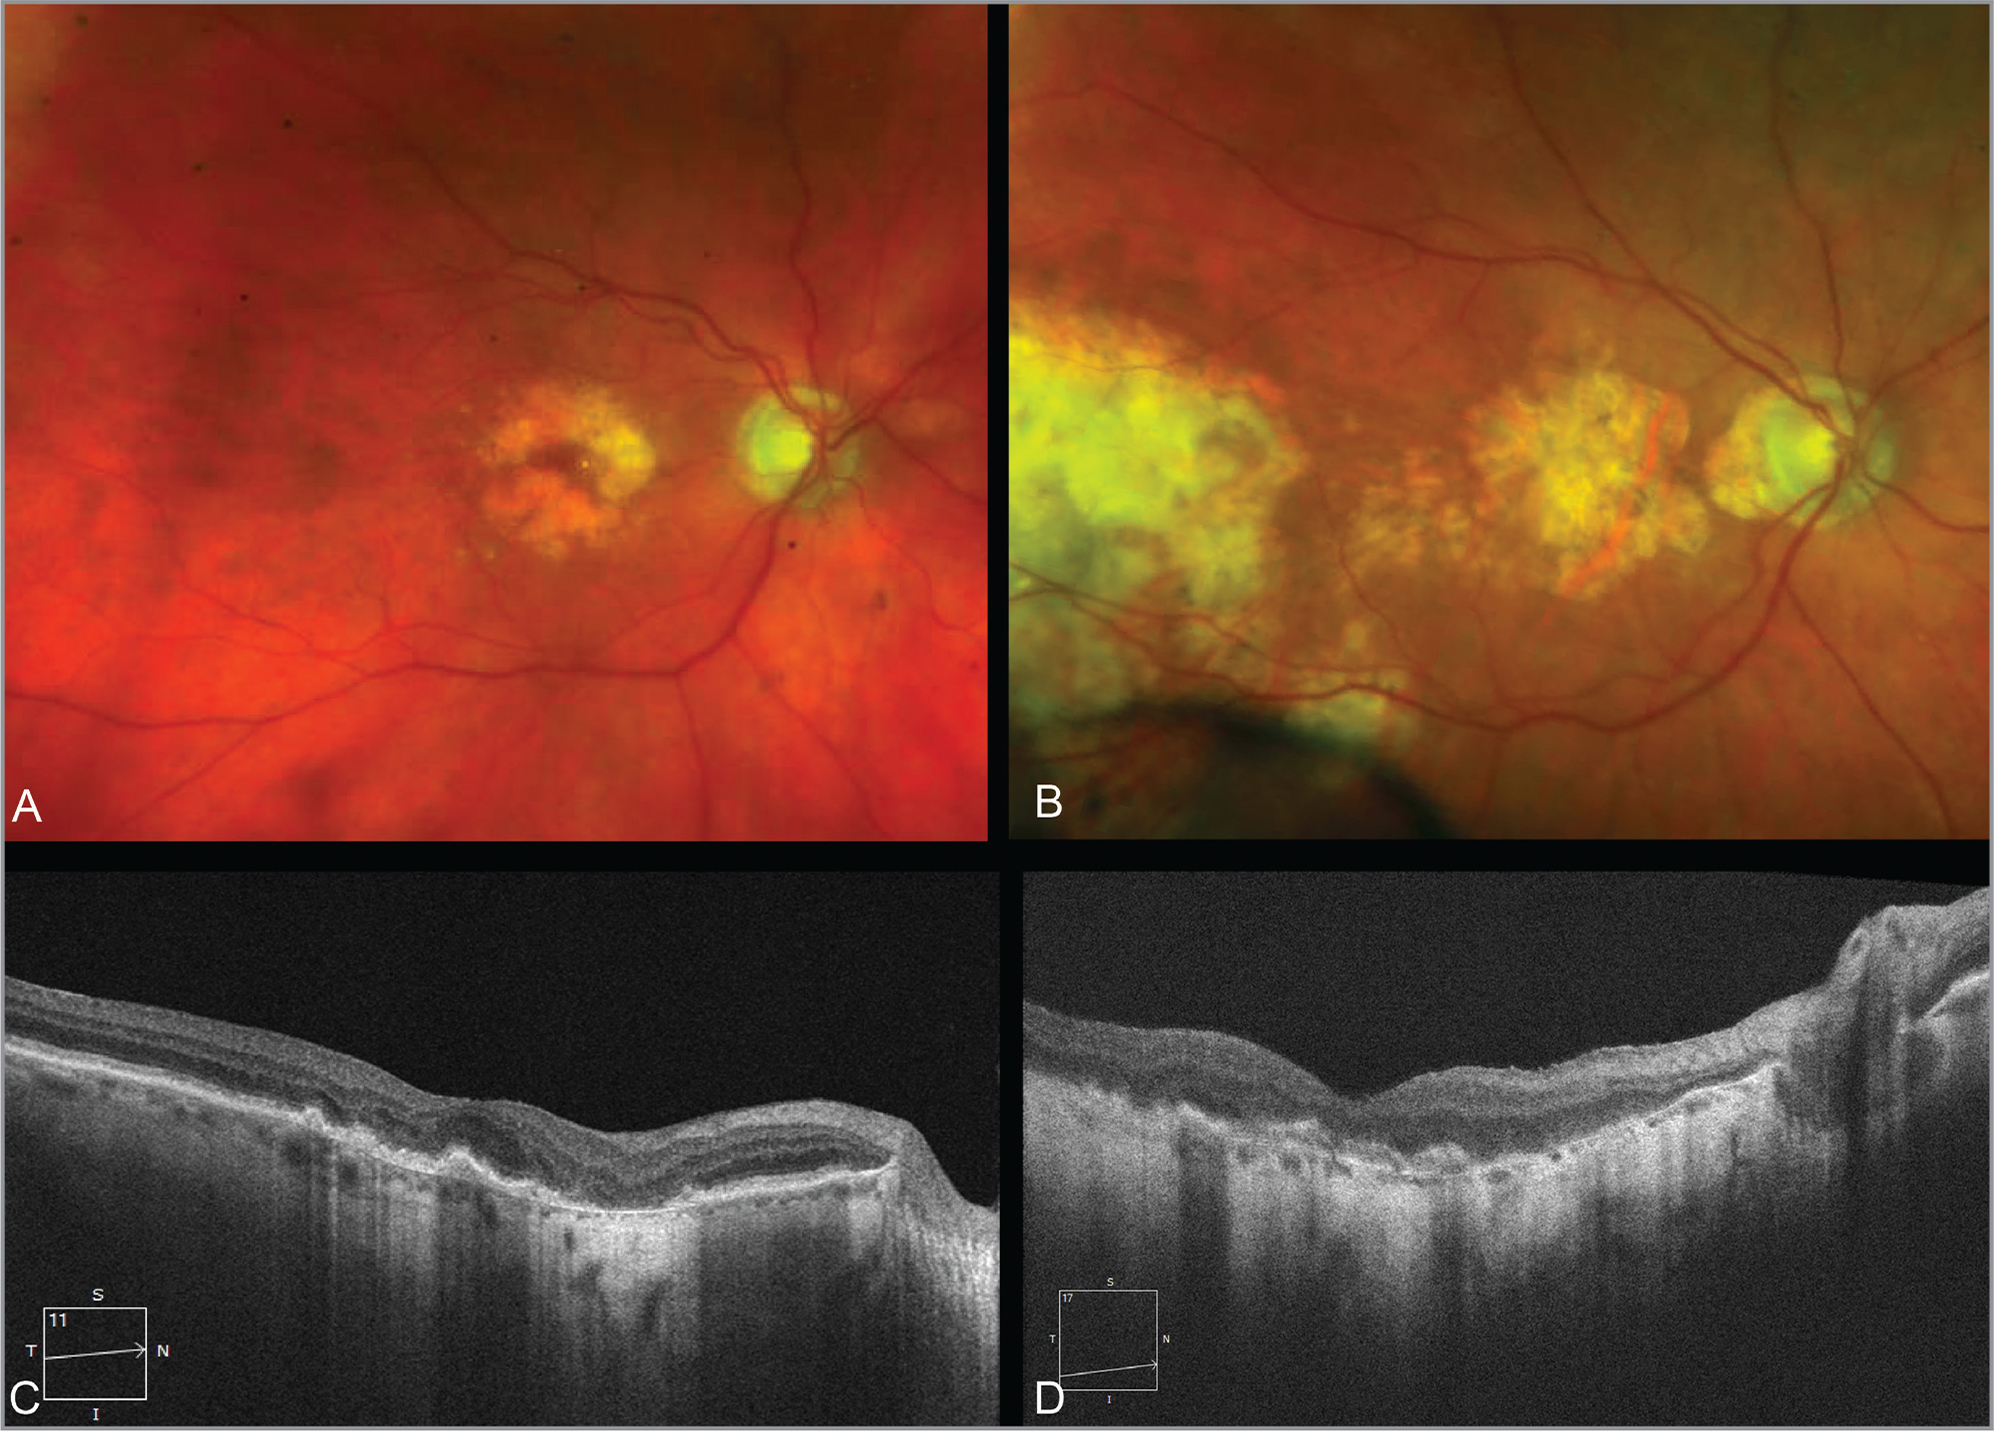 Color fundus photographs of the right eye of the monozygotic identical 96-year-old twin sisters discordant for Alzheimer's disease (AD) (cognitively normal sister is A and the twin with Alzheimer's dementia is B). There is geographic atrophy in both twins that involves the fovea in B and barely spares the fovea in A. In B, there is also chorioretinal scarring temporally from a prior retinal detachment repair. C and D show the corresponding cross-sectional optical coherence tomography B-scans. The subfoveal choroidal thickness was 114 μm in the cognitively normal twin (C) and 75 μm in the twin with AD (D).